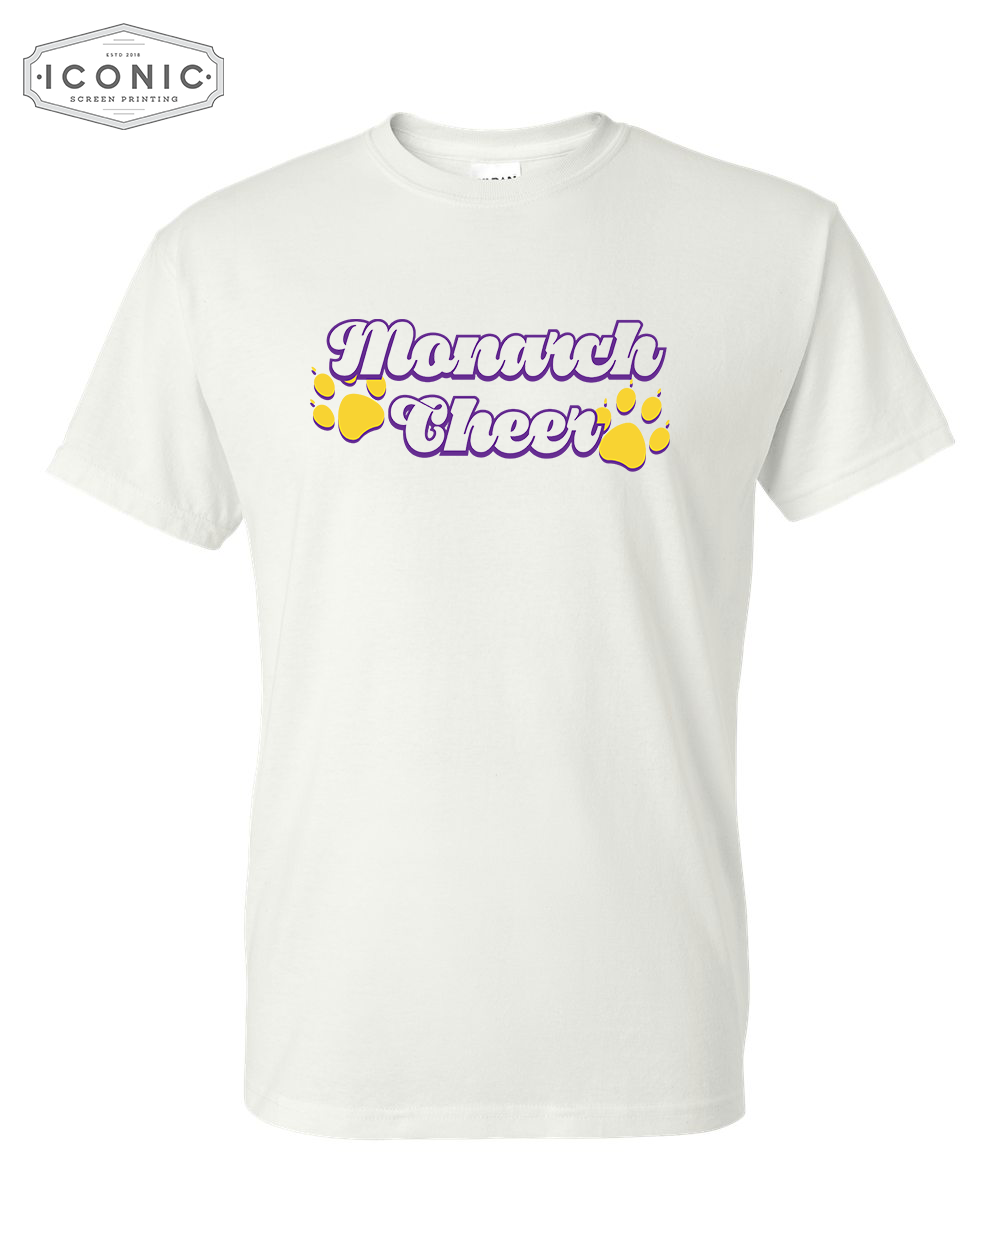 Monarch Cheer - DryBlend T-Shirt